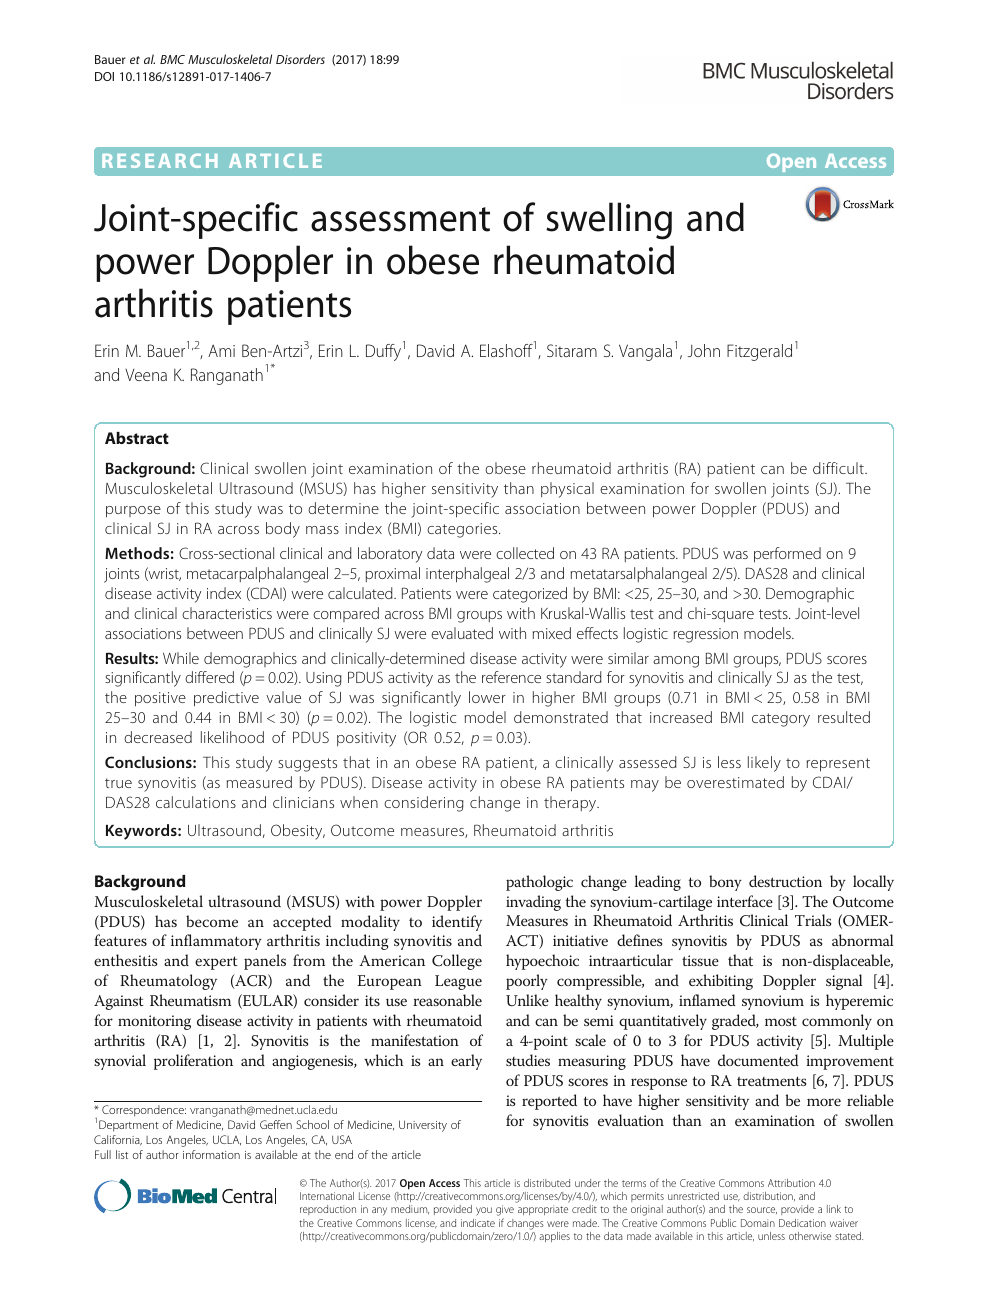 Joint-specific assessment of swelling and power Doppler in